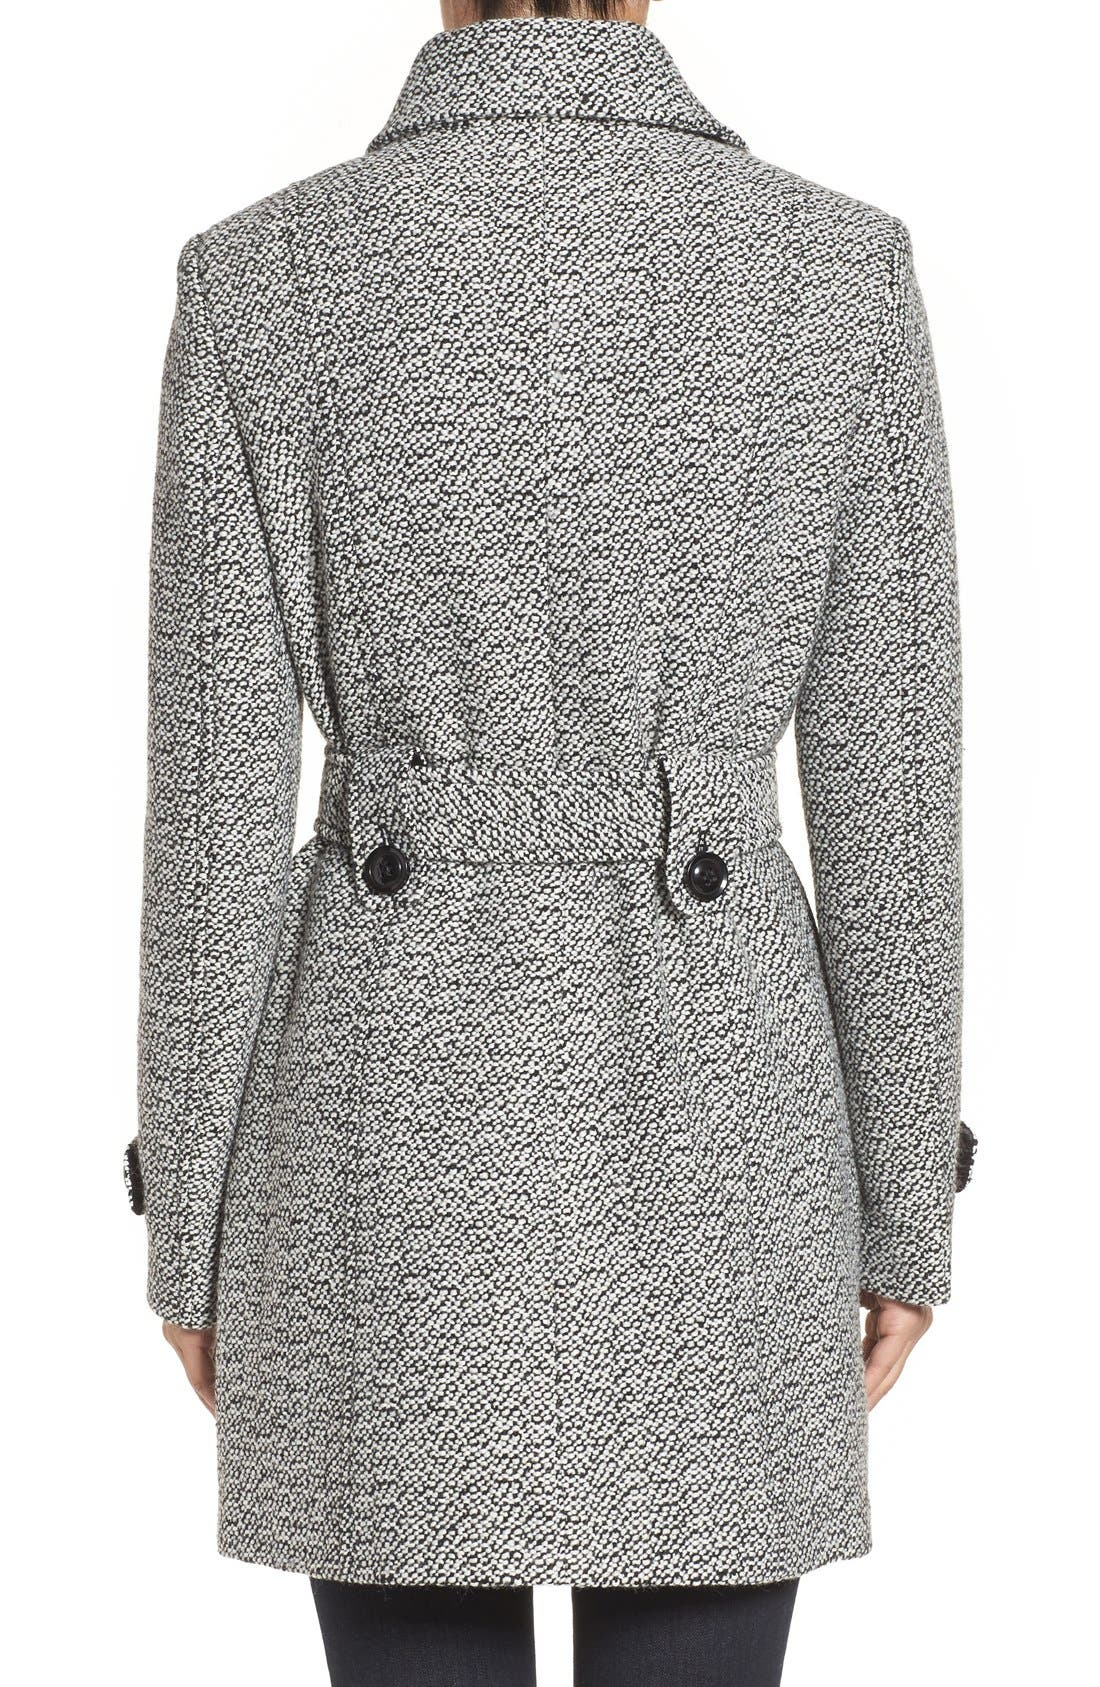 Belted Tweed Coat,                             Alternate thumbnail 2, color,                             Black/ White